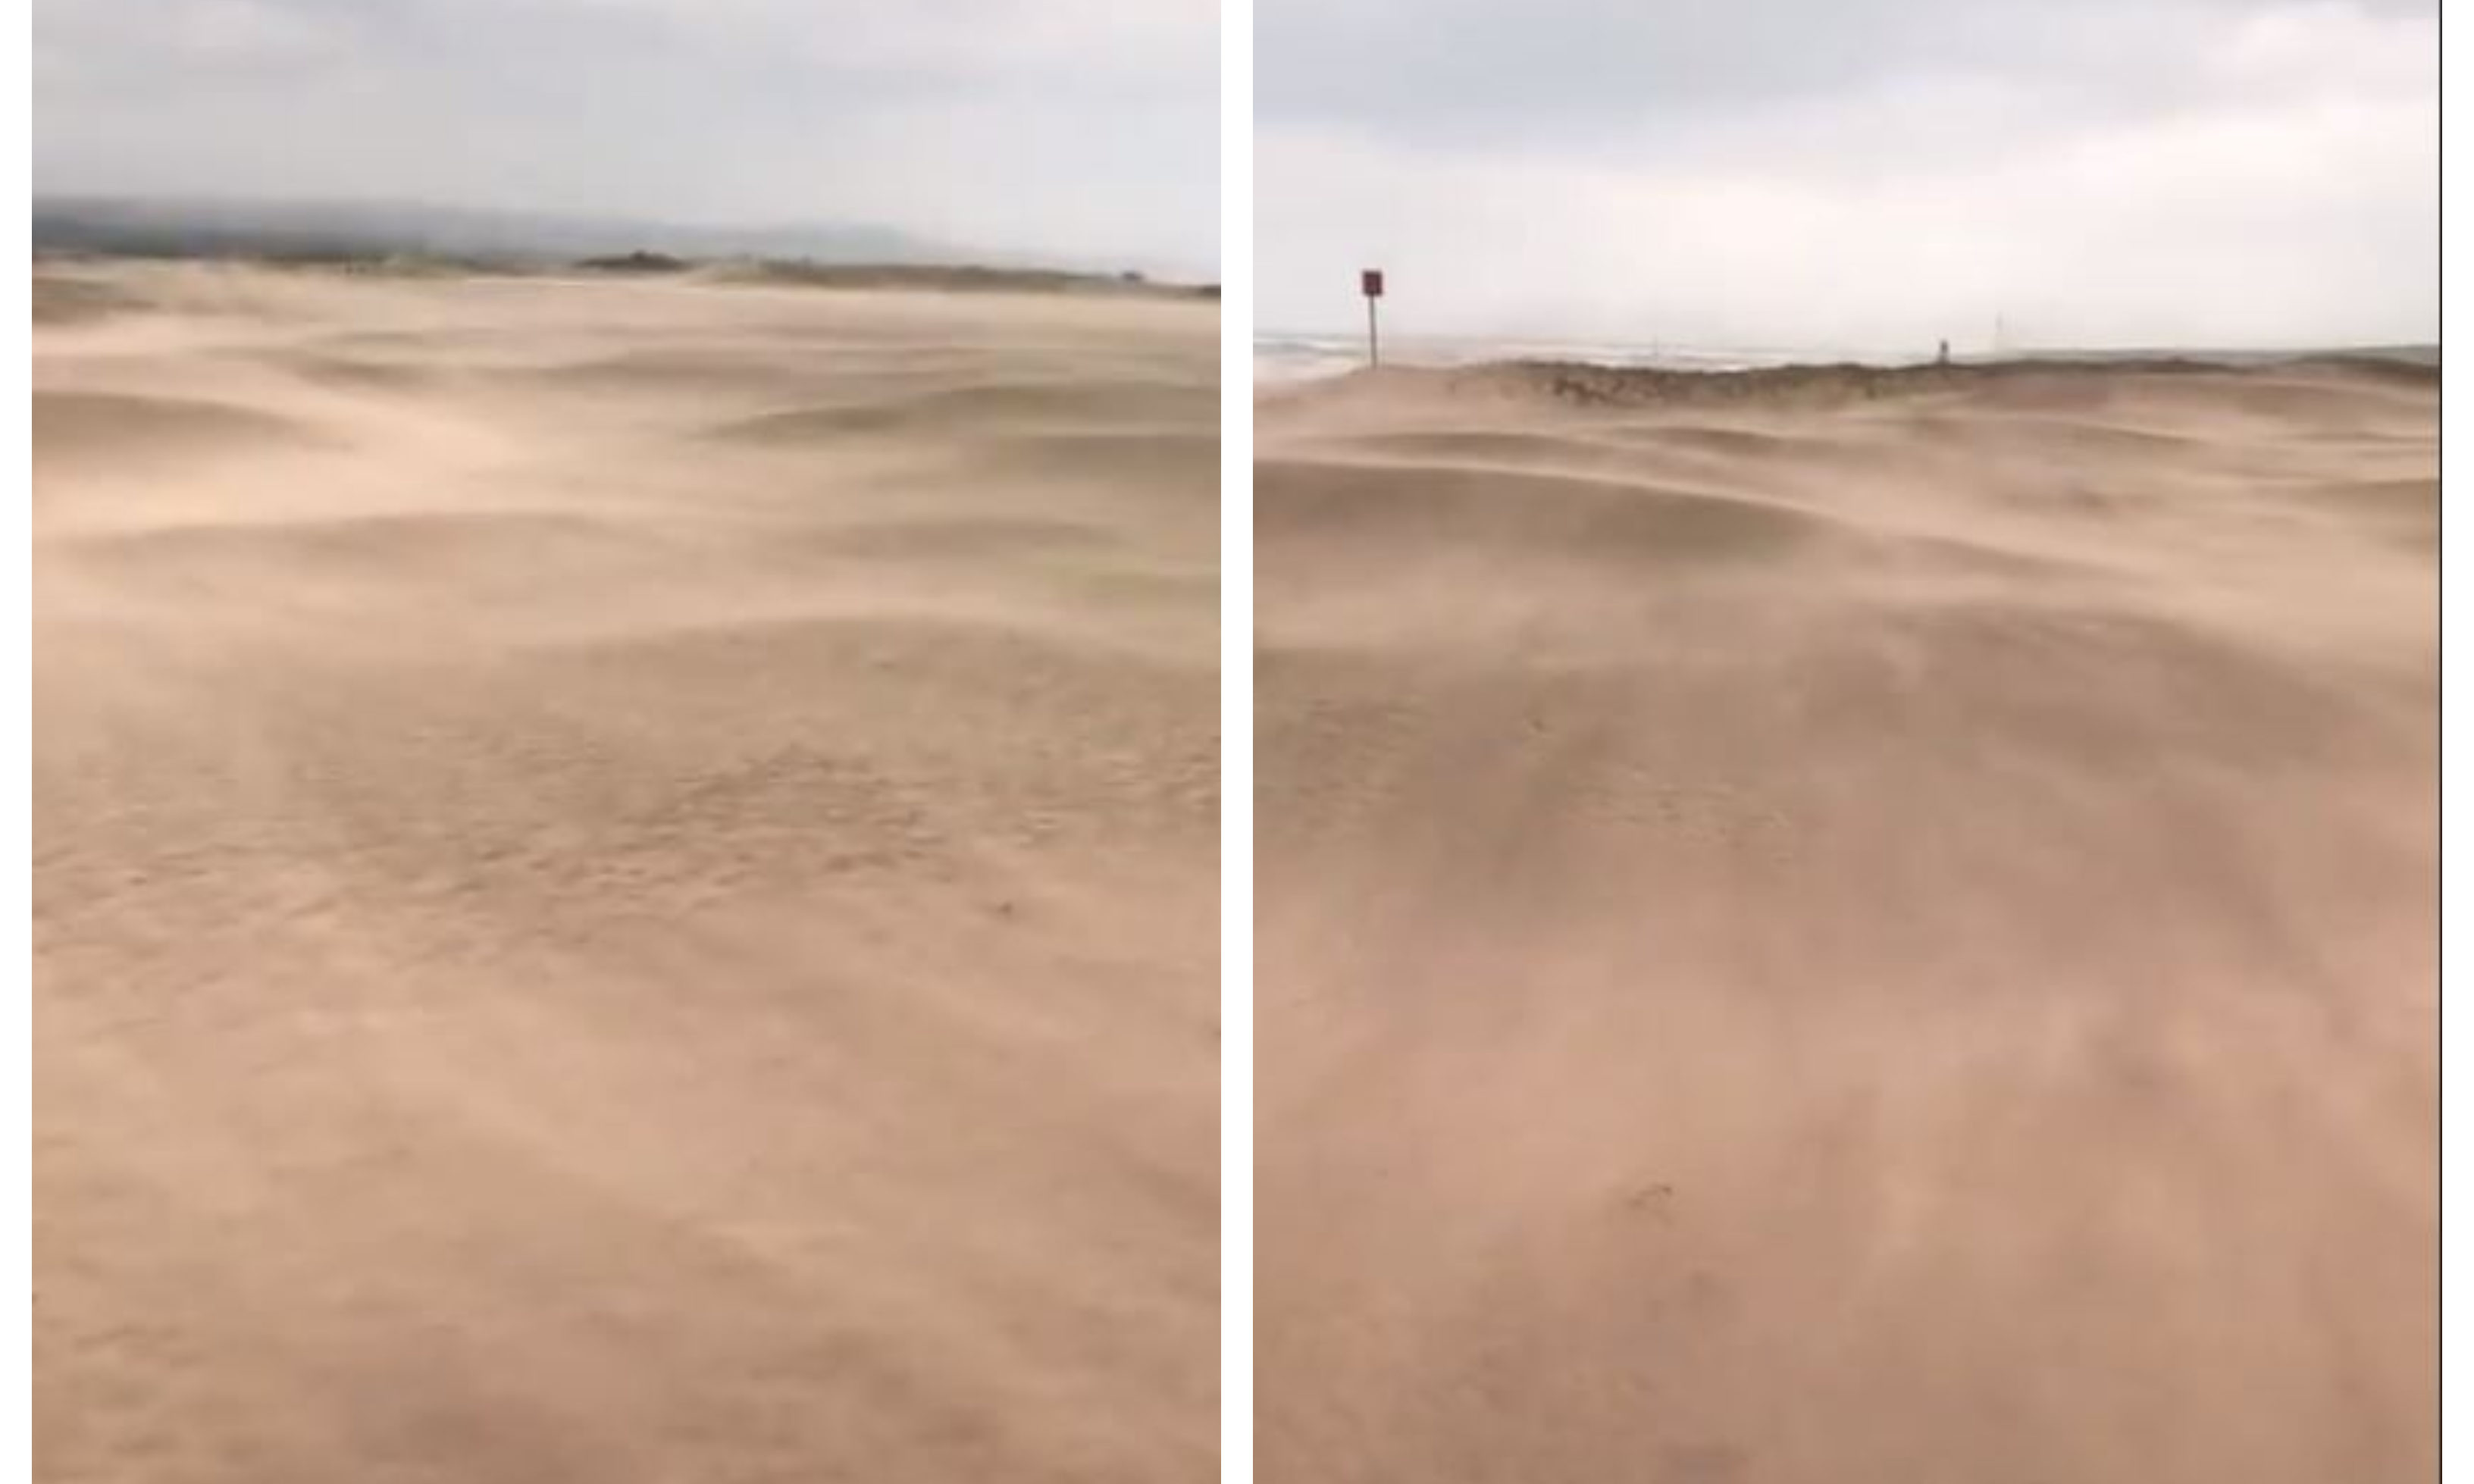 The second fairway of the 1562 Course at Montrose Golf Links has been left covered in sand.